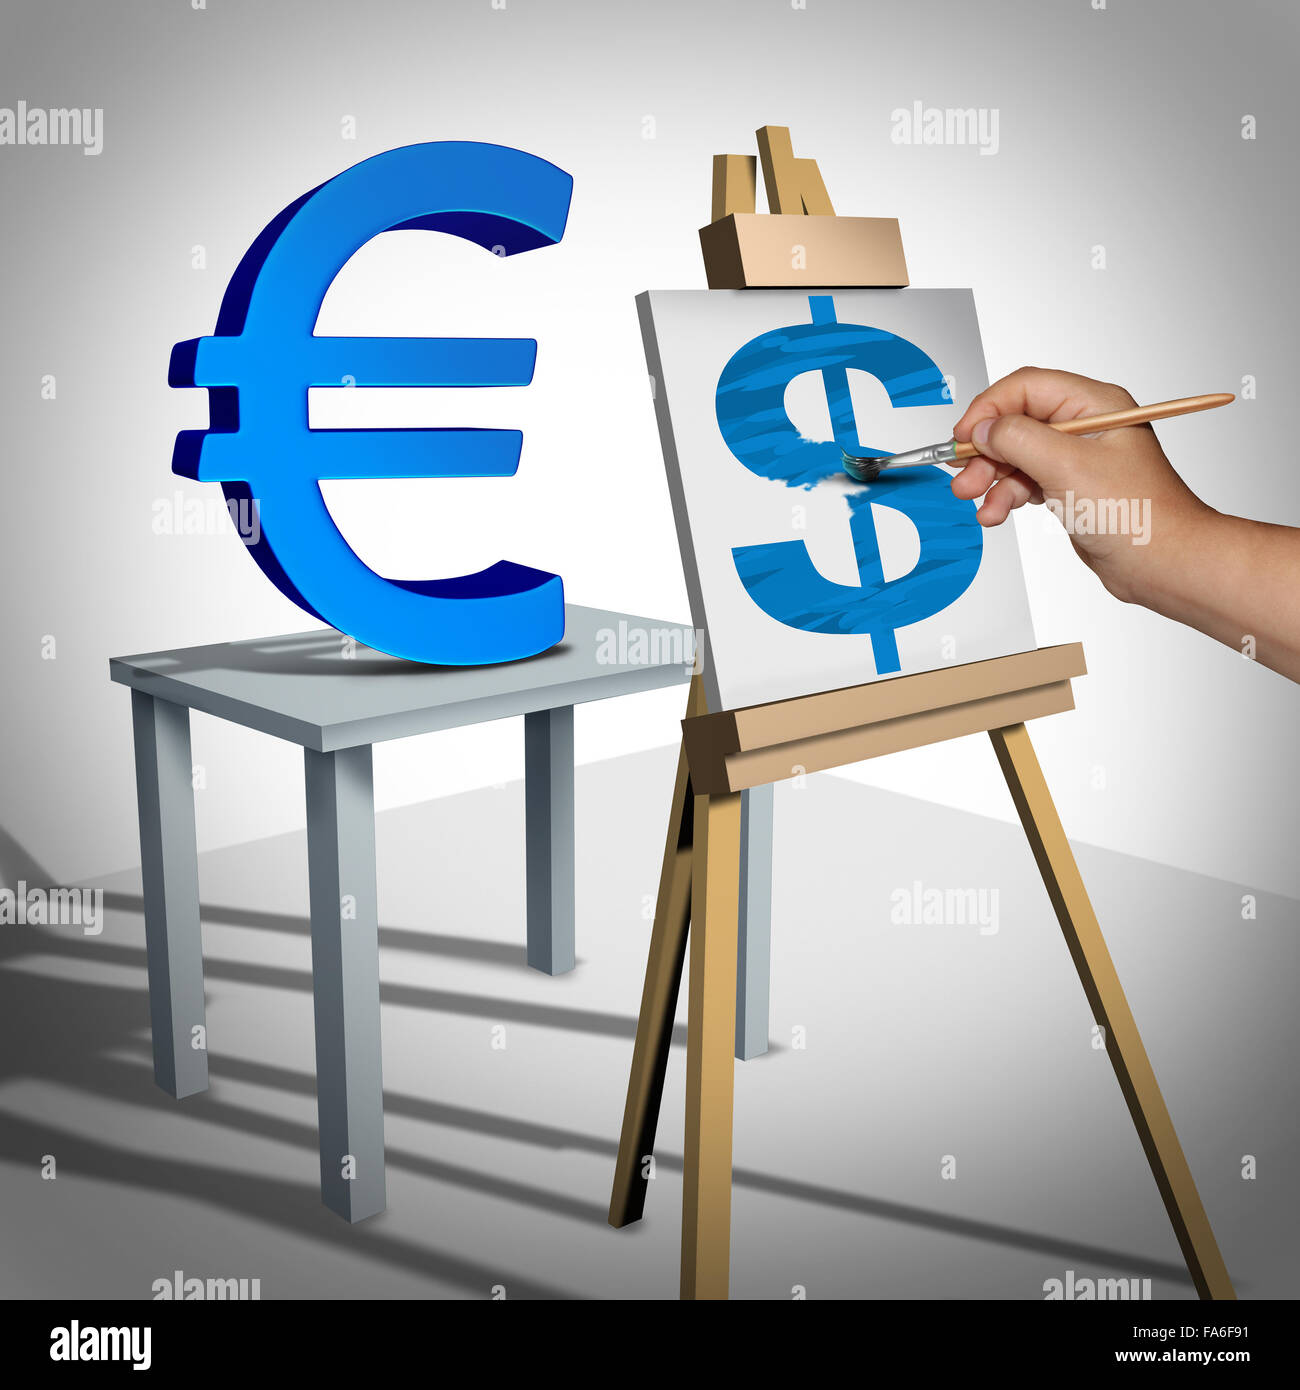 Money exchange and currency conversion financial business concept as a three dimensional euro sign being painted Stock Photo